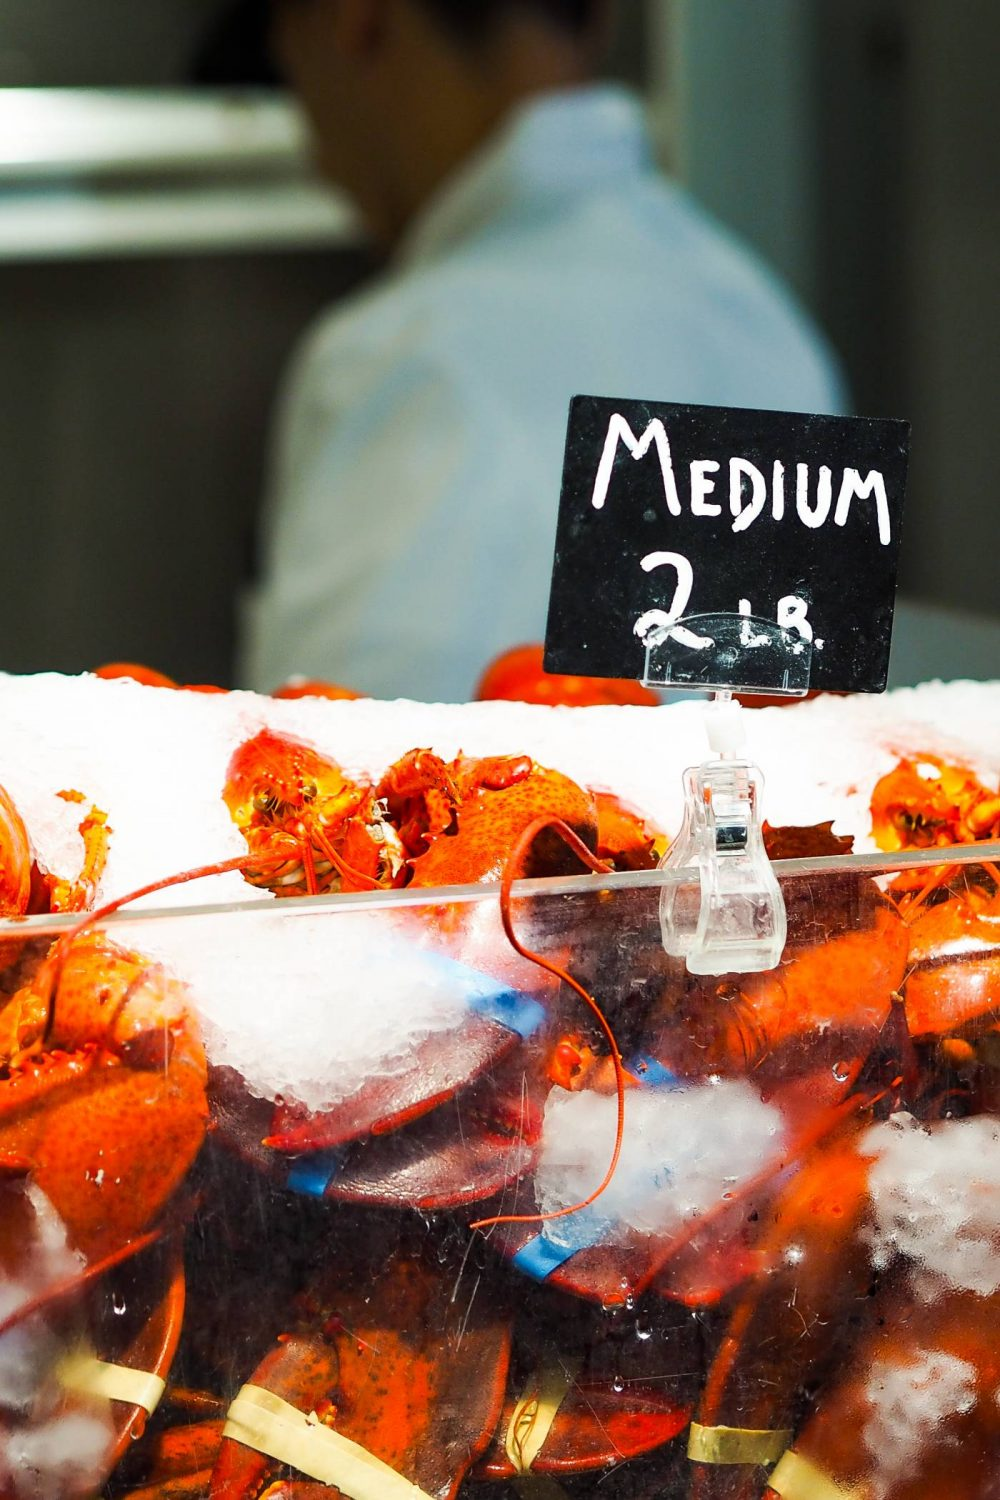 chelsea market, the lobster place, mac n cheese, new york, where to eat in new york